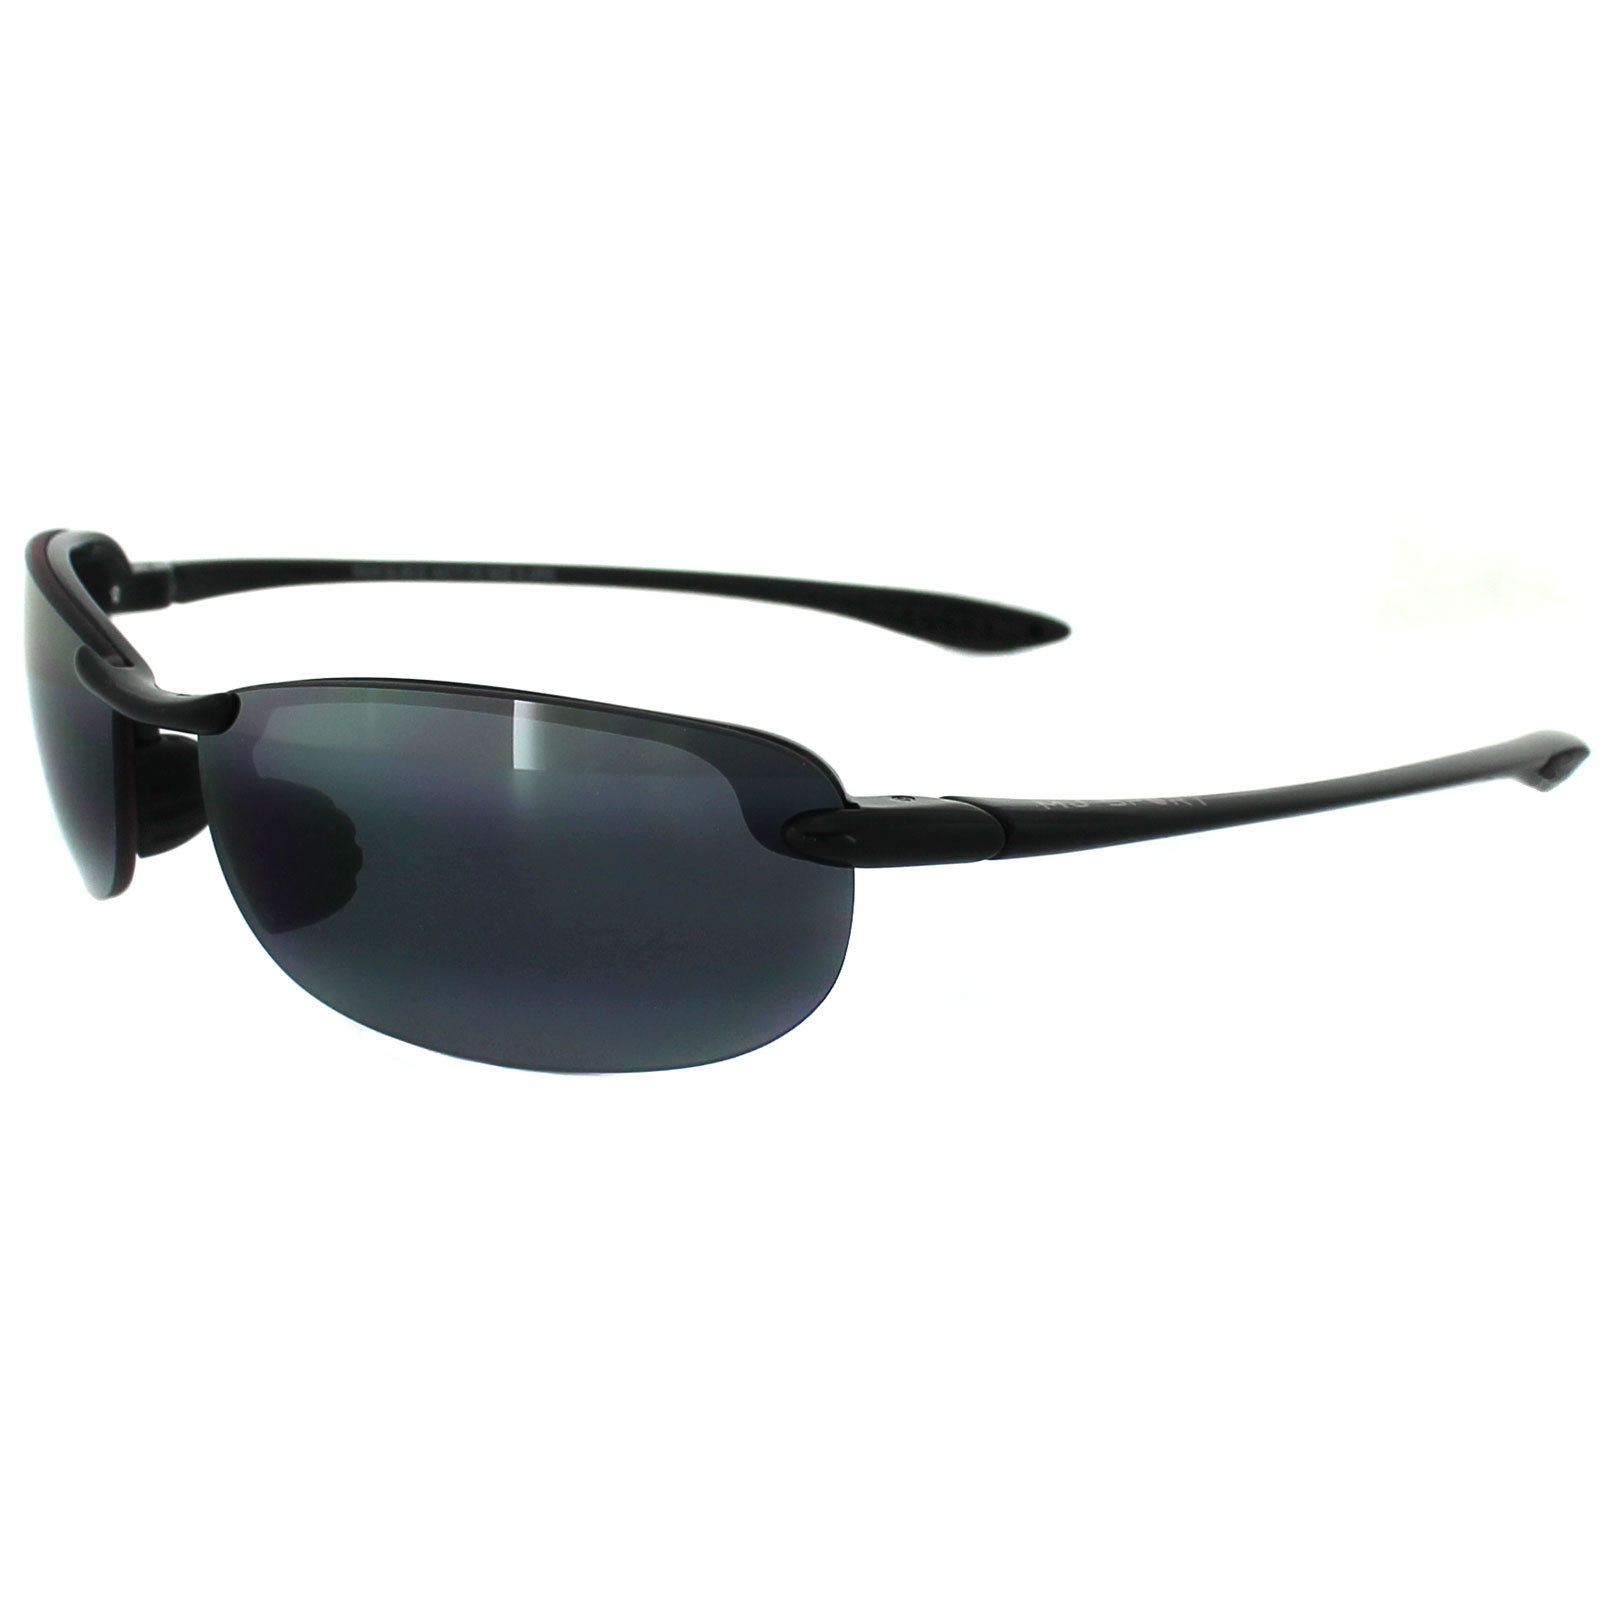 08b74e60f933 Maui Jim Sunglasses Makaha 405-02 Gloss Black Grey Polarized Thumbnail 1 ...